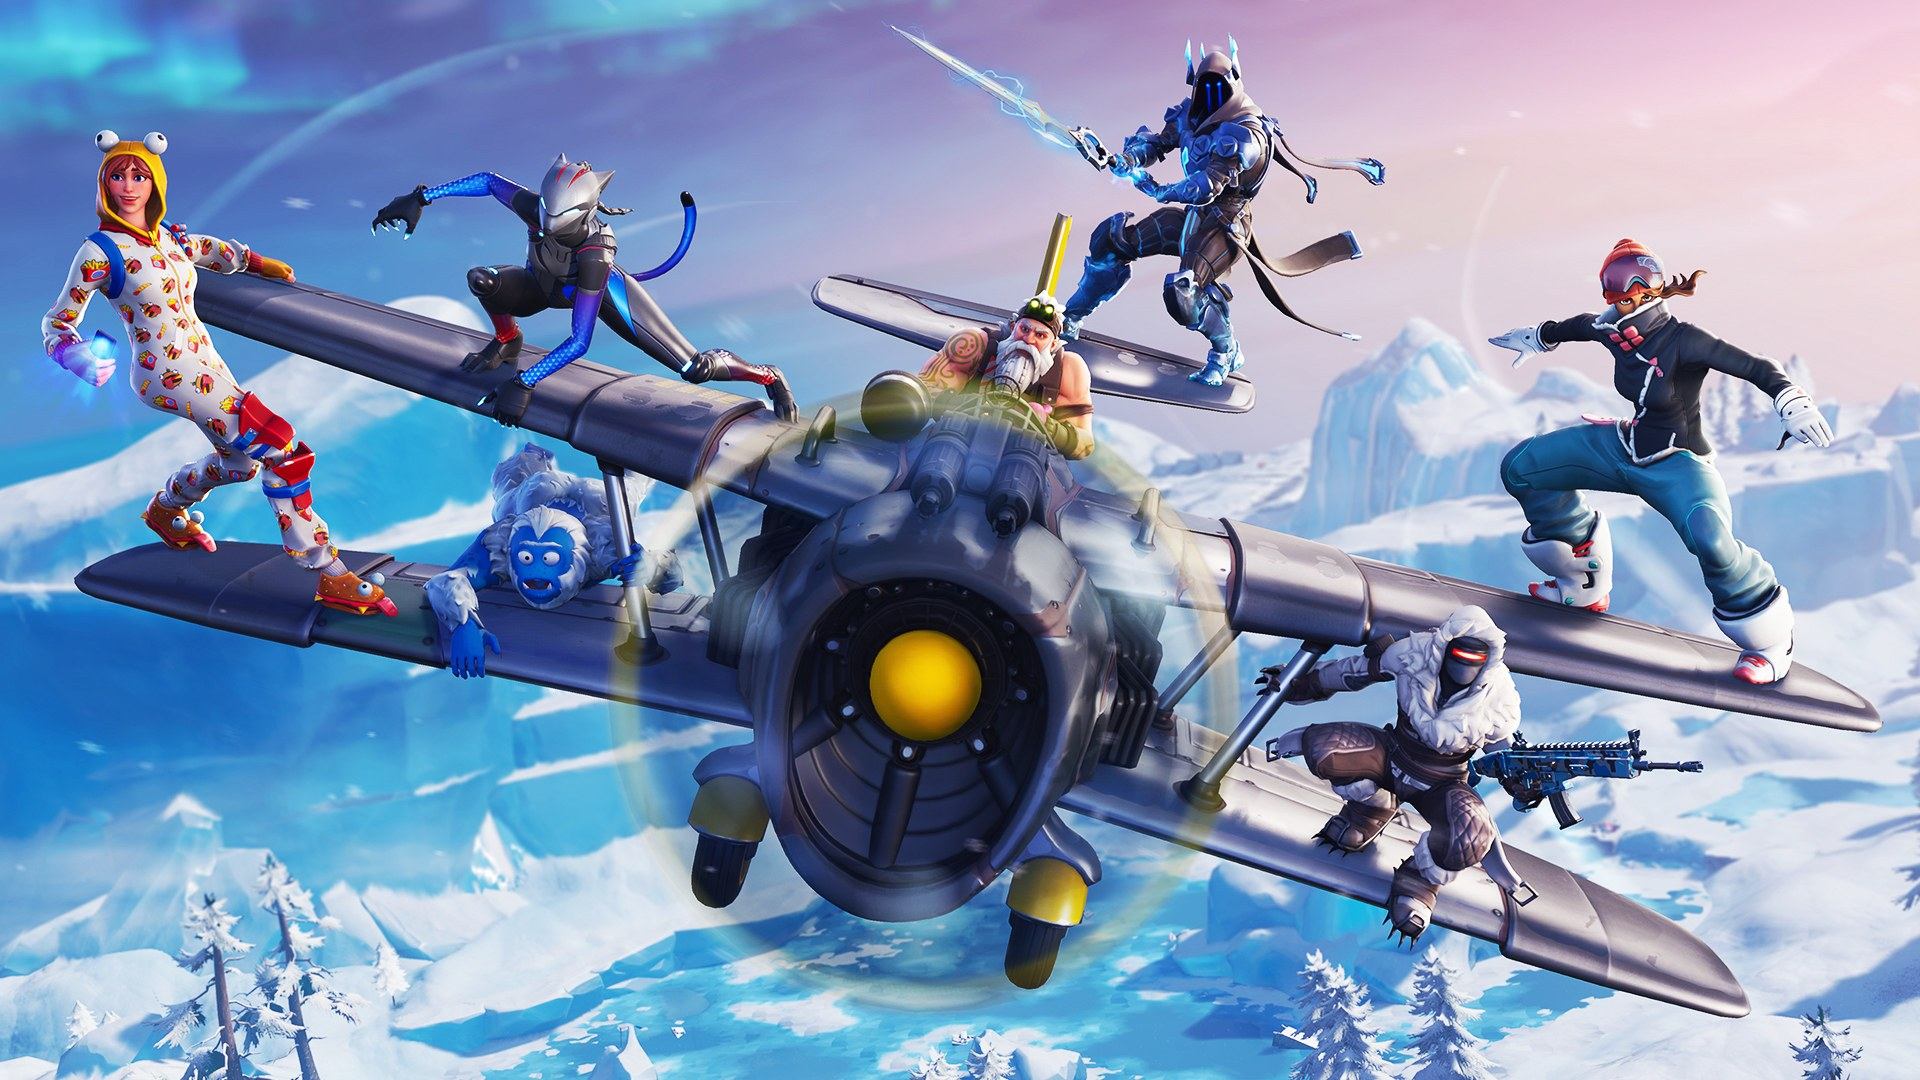 The Most Influential Video Game of 2018: Fortnite